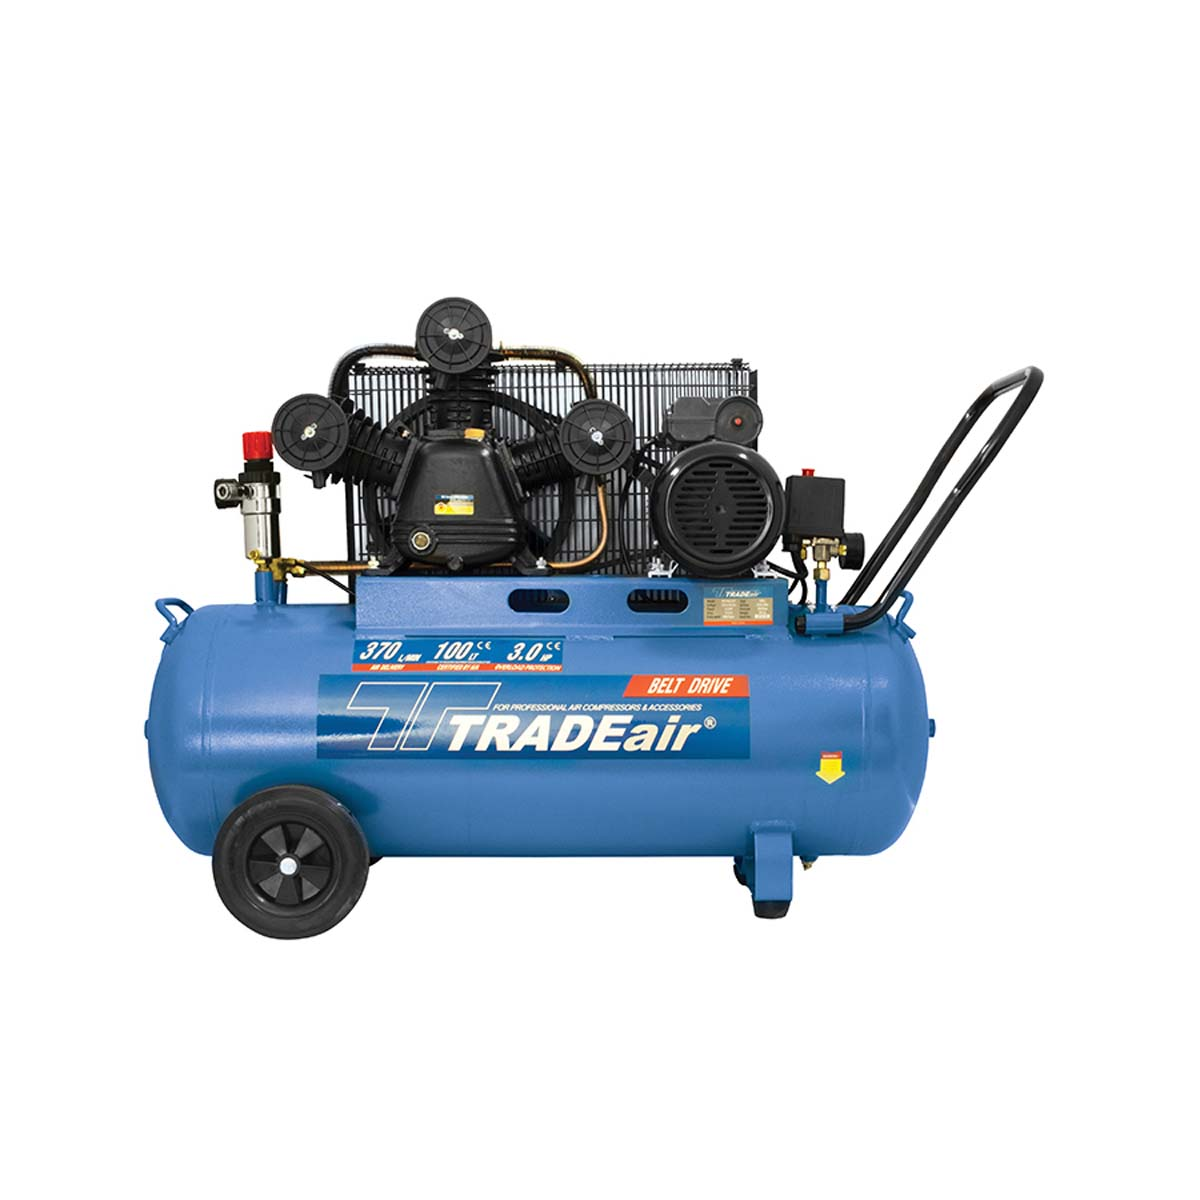 tradeair-mcfrc227-belt-drive-compressor